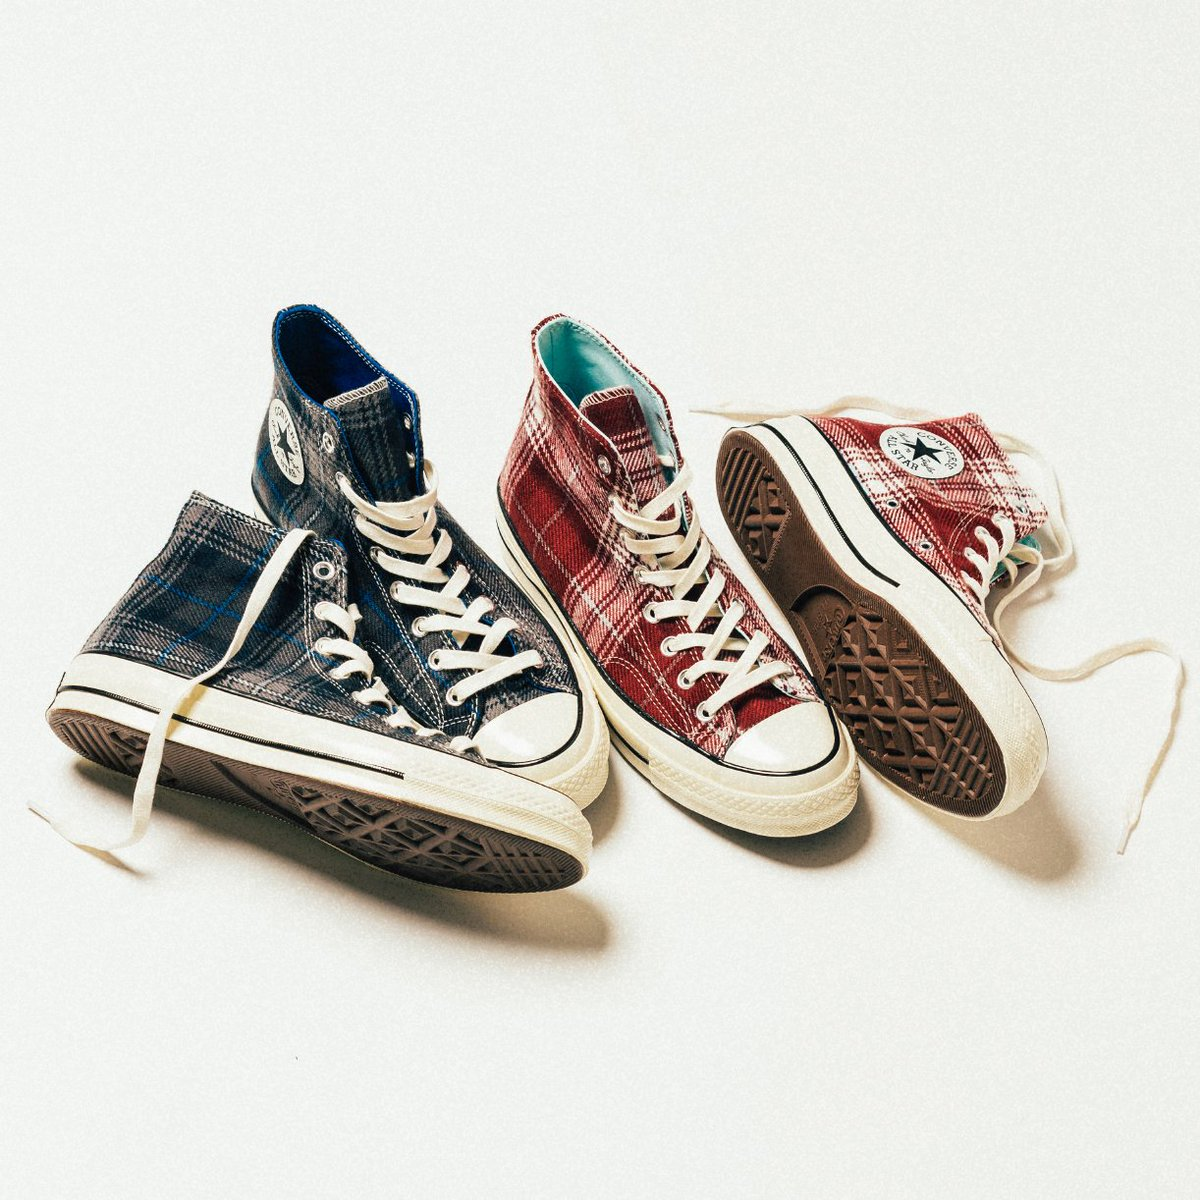 f67ccd65ac55 The Converse Chuck Taylor All Star 70 Hi Plaid Pack now available in-store    online. https   bit.ly 2gseecJ pic.twitter.com PR7DphnFna